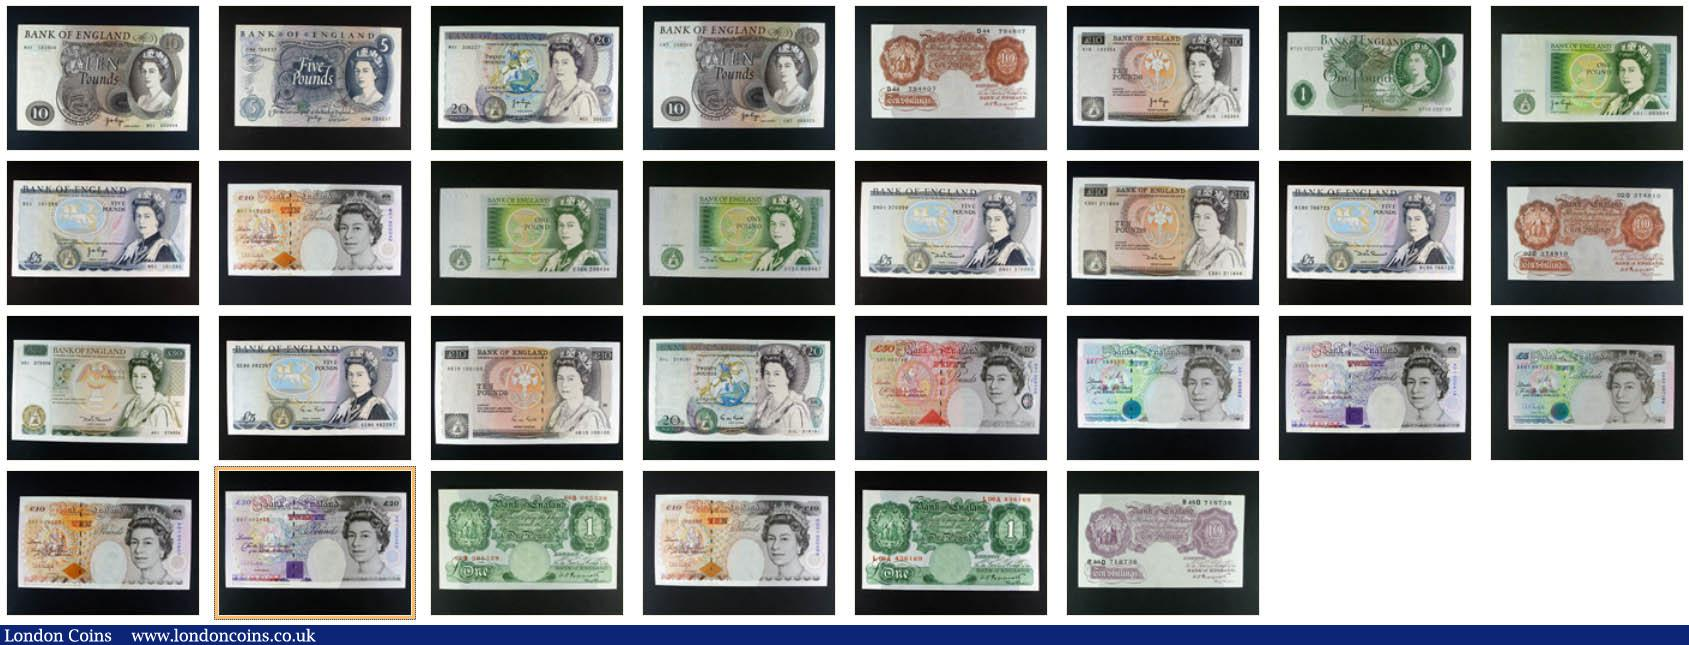 Bank of England collection in album (70) high grade collection all different from Mahon 10/- Z80 to Kentfield M01 replacement, includes Guernsey ovpt H36A, Fforde £20 A01, replacements Page £5 09M aUNC, Page £20 M01 aU/UNC, portrait Page £10 M01 aUNC, Fforde £1 T29M  aUNC, numerous 1st and last series, viewing highly recommended : English Banknotes : Auction 137 : Lot 164